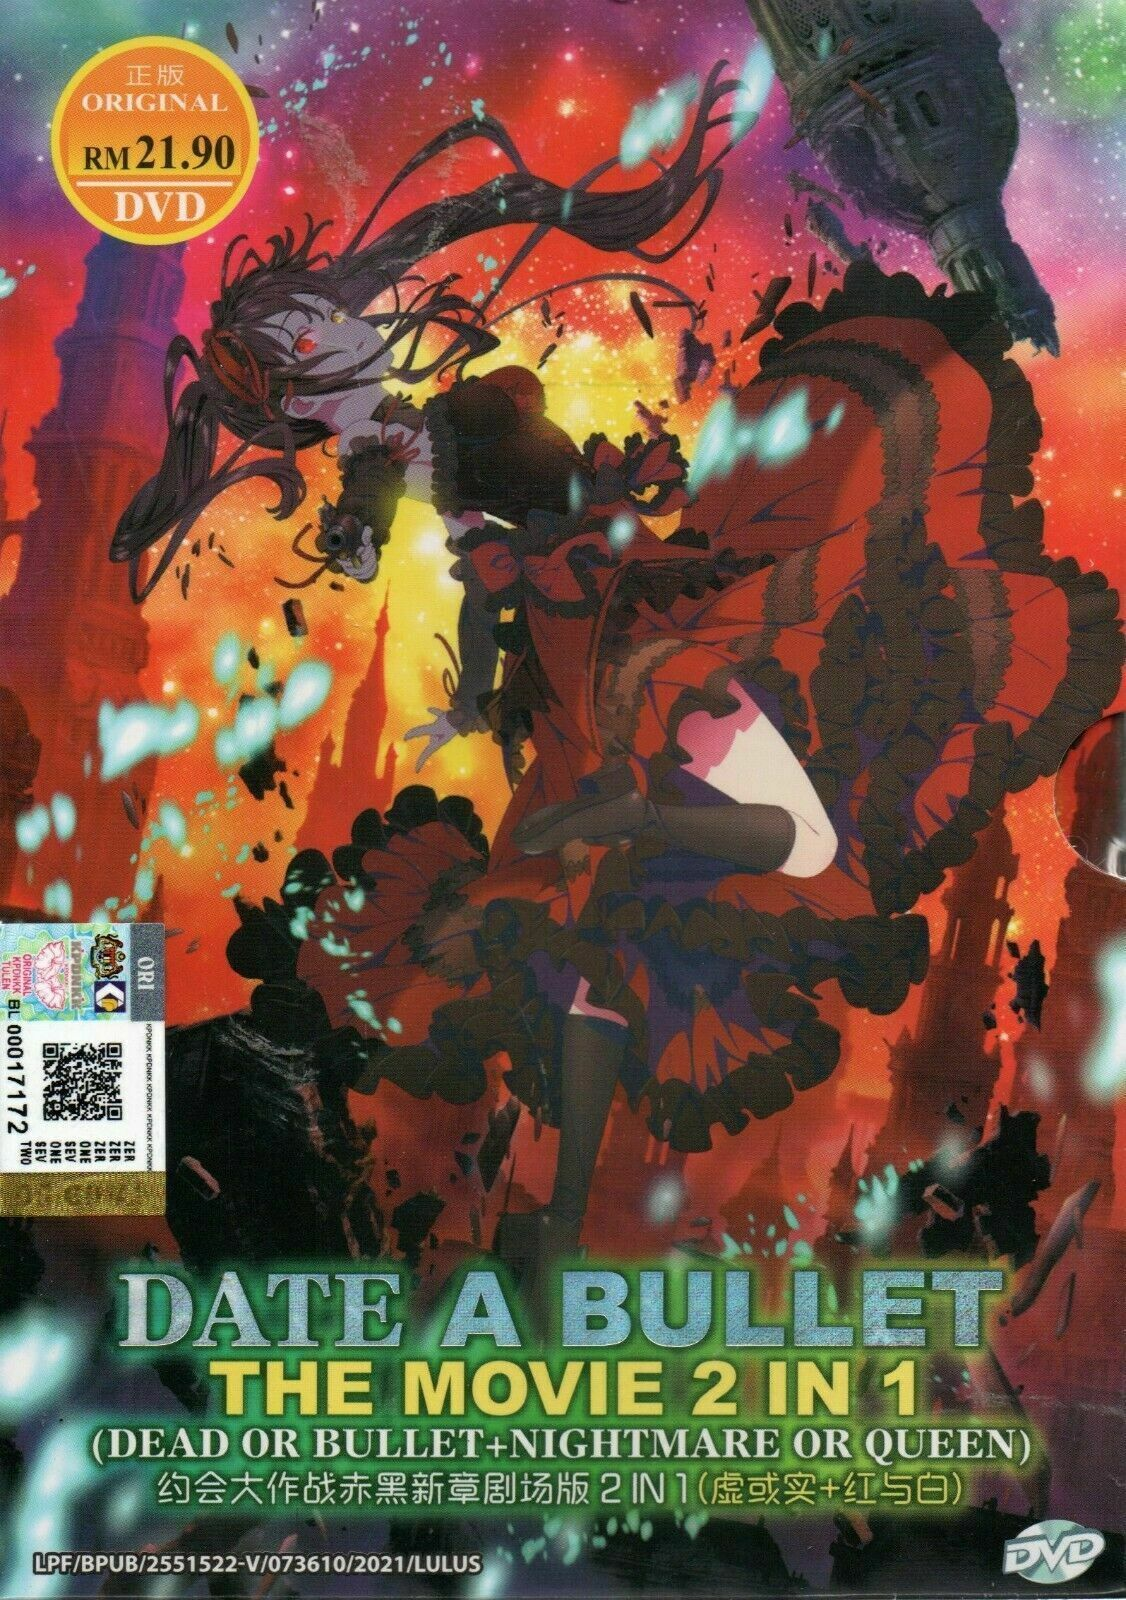 Date A Bulle The Movie 2 in 1: Dead or Bullet + Nightmare Or Queen Ship From USA